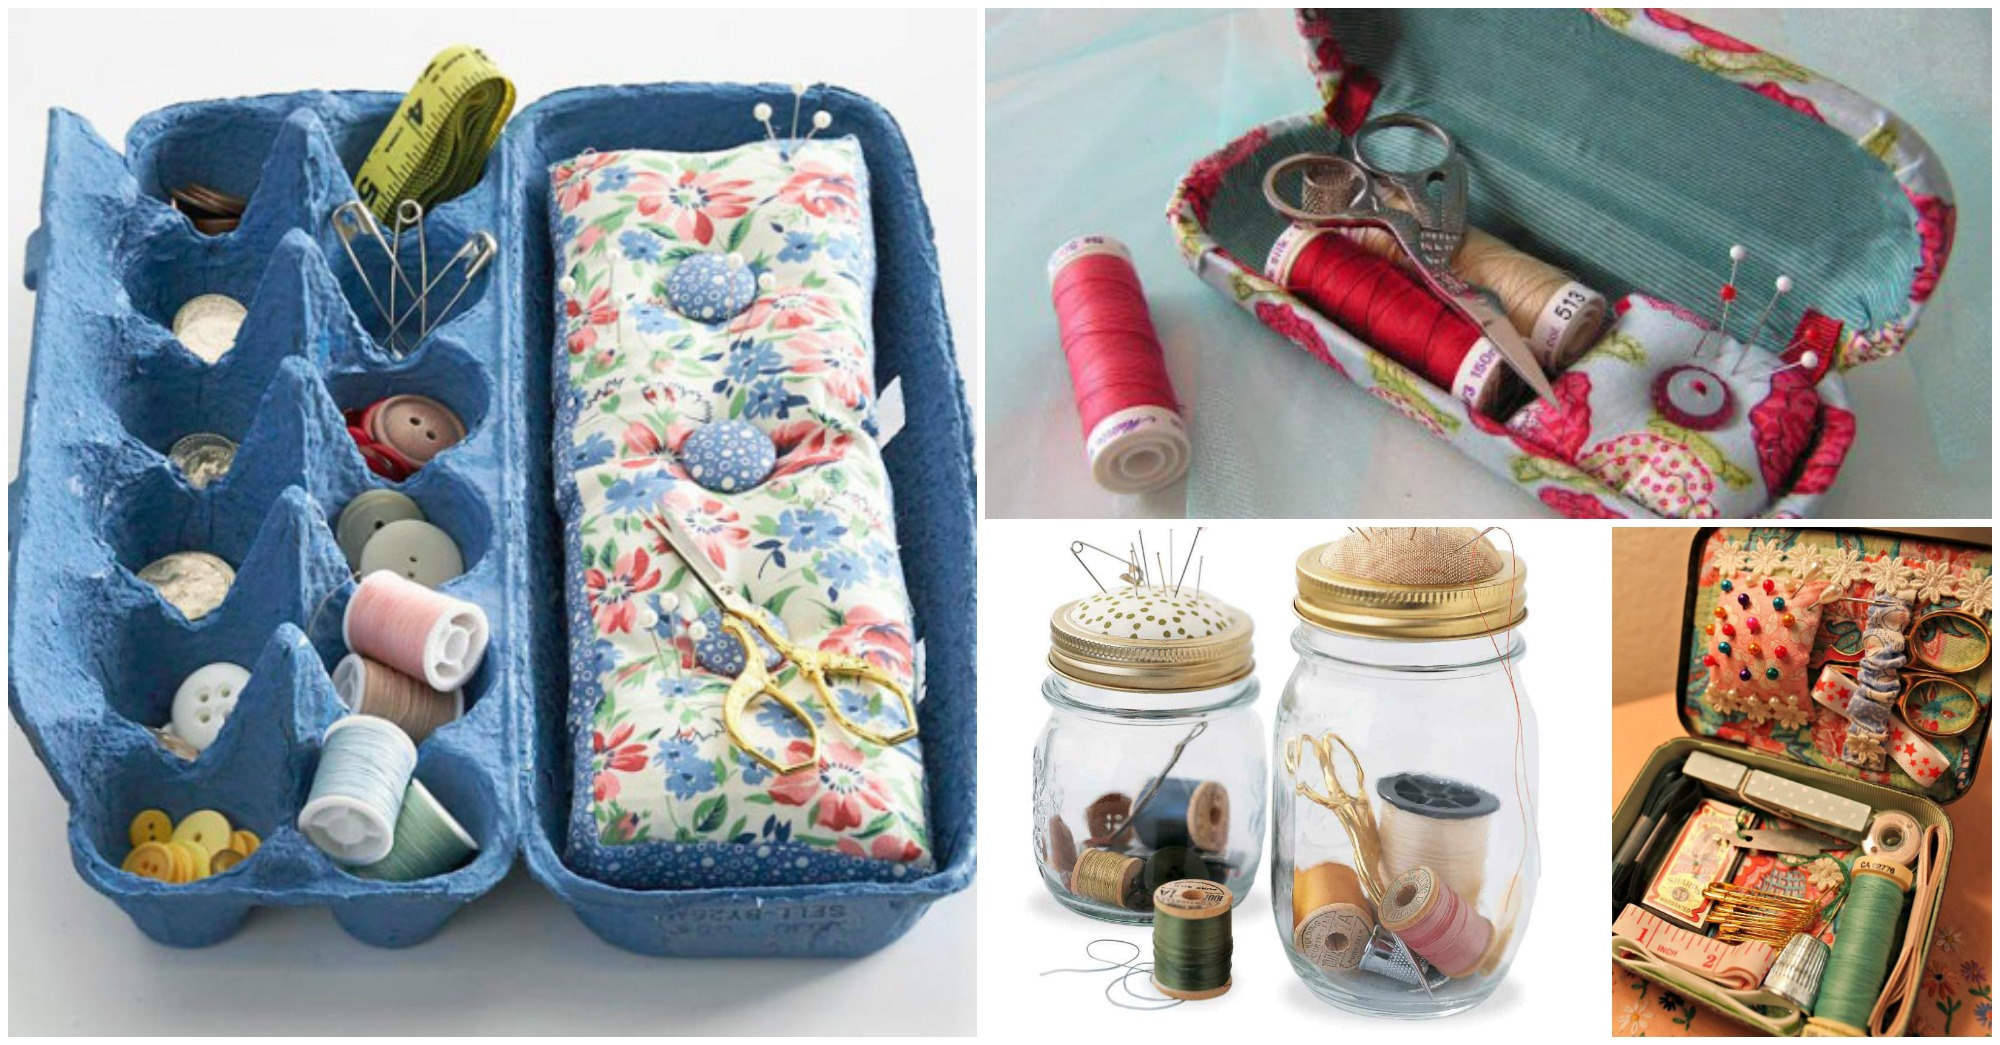 6 Cool DIY Sewing Kit Ideas to Make at Home